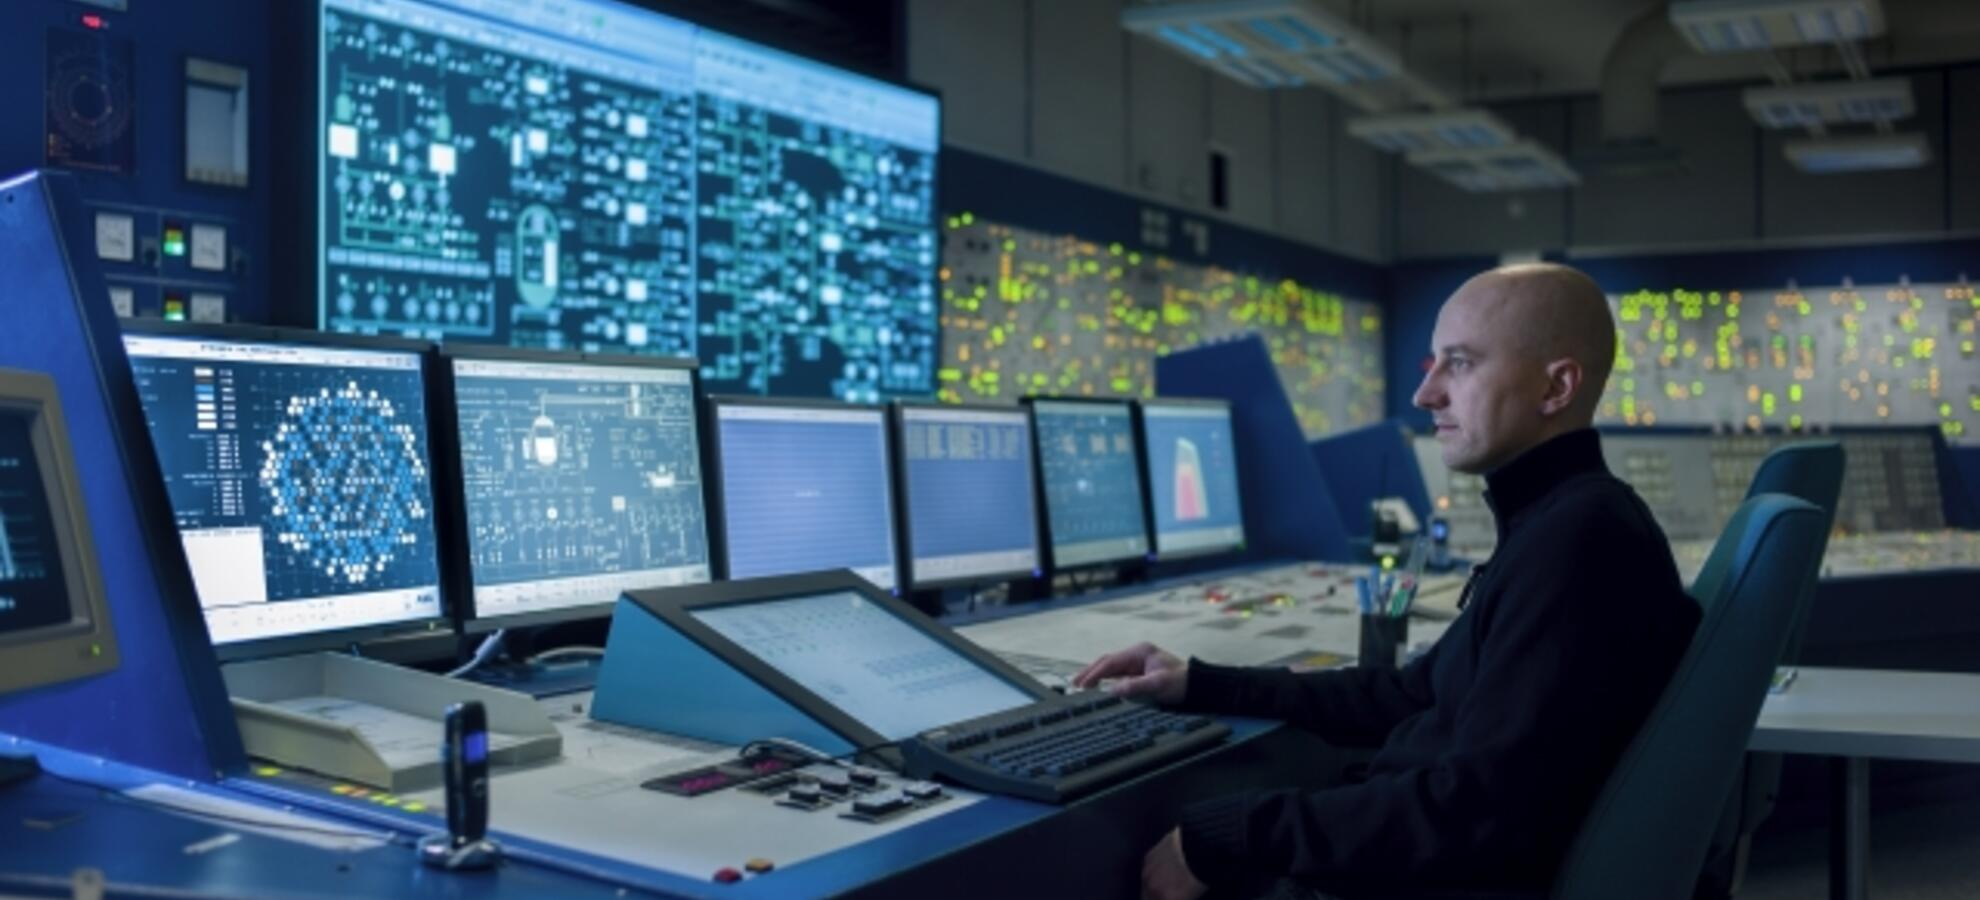 Control Room Design Services Fortum Nuclear Power Plant Layout Advanced Solutions For Safe And Ergonomic Rooms Based On Fortums Background As A